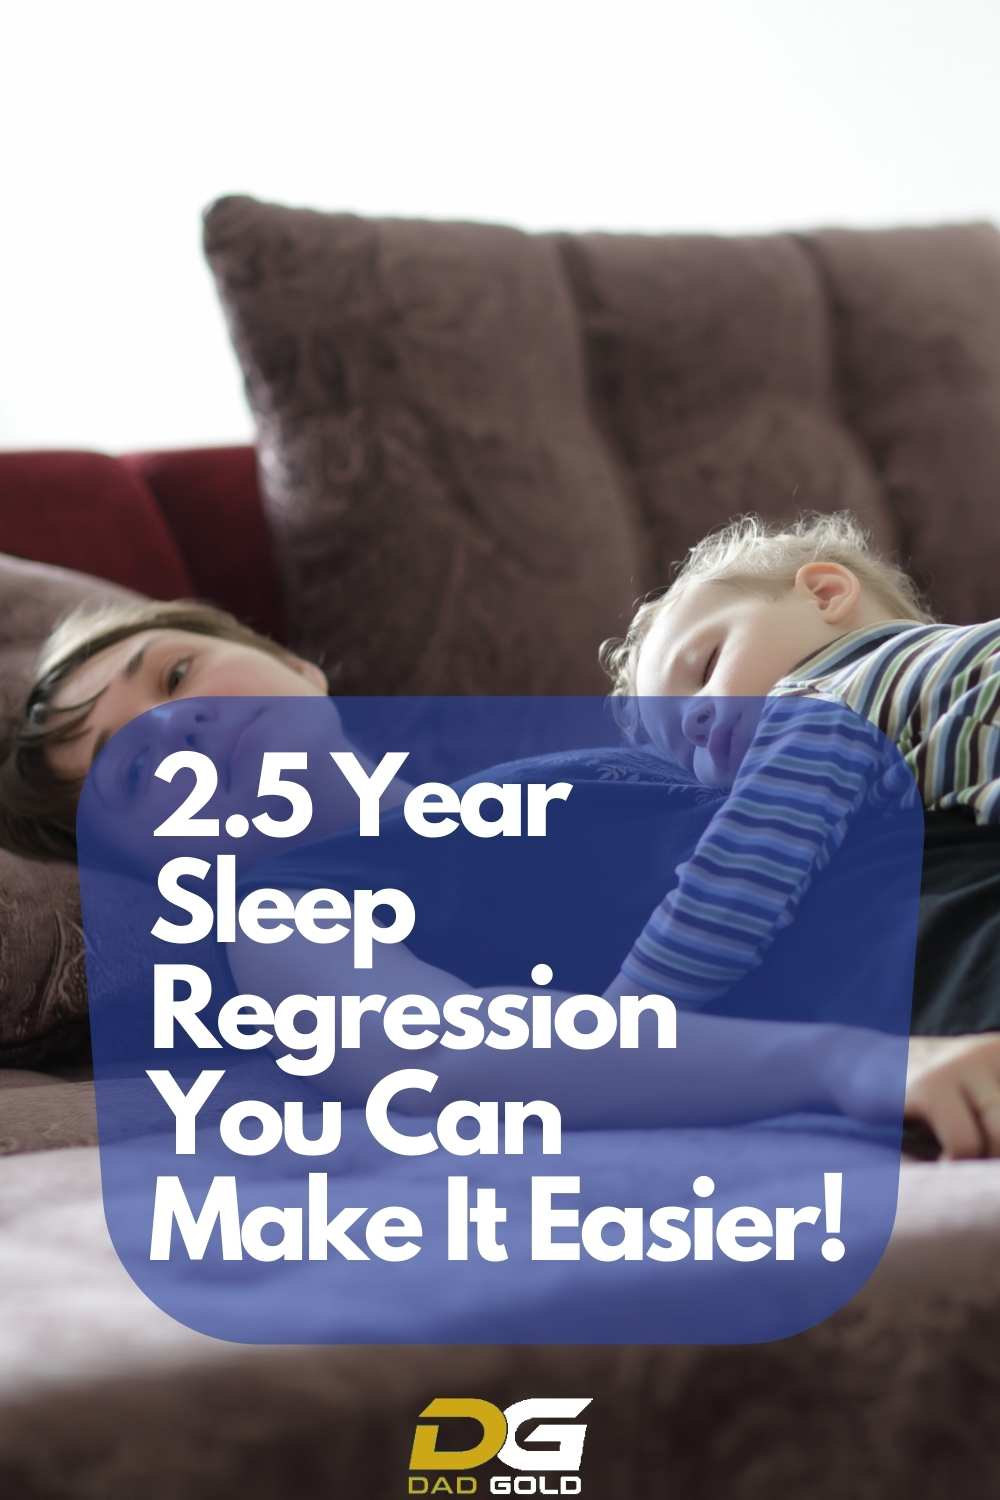 2.5 Year Sleep Regression You Can Make It Easier toddler tips